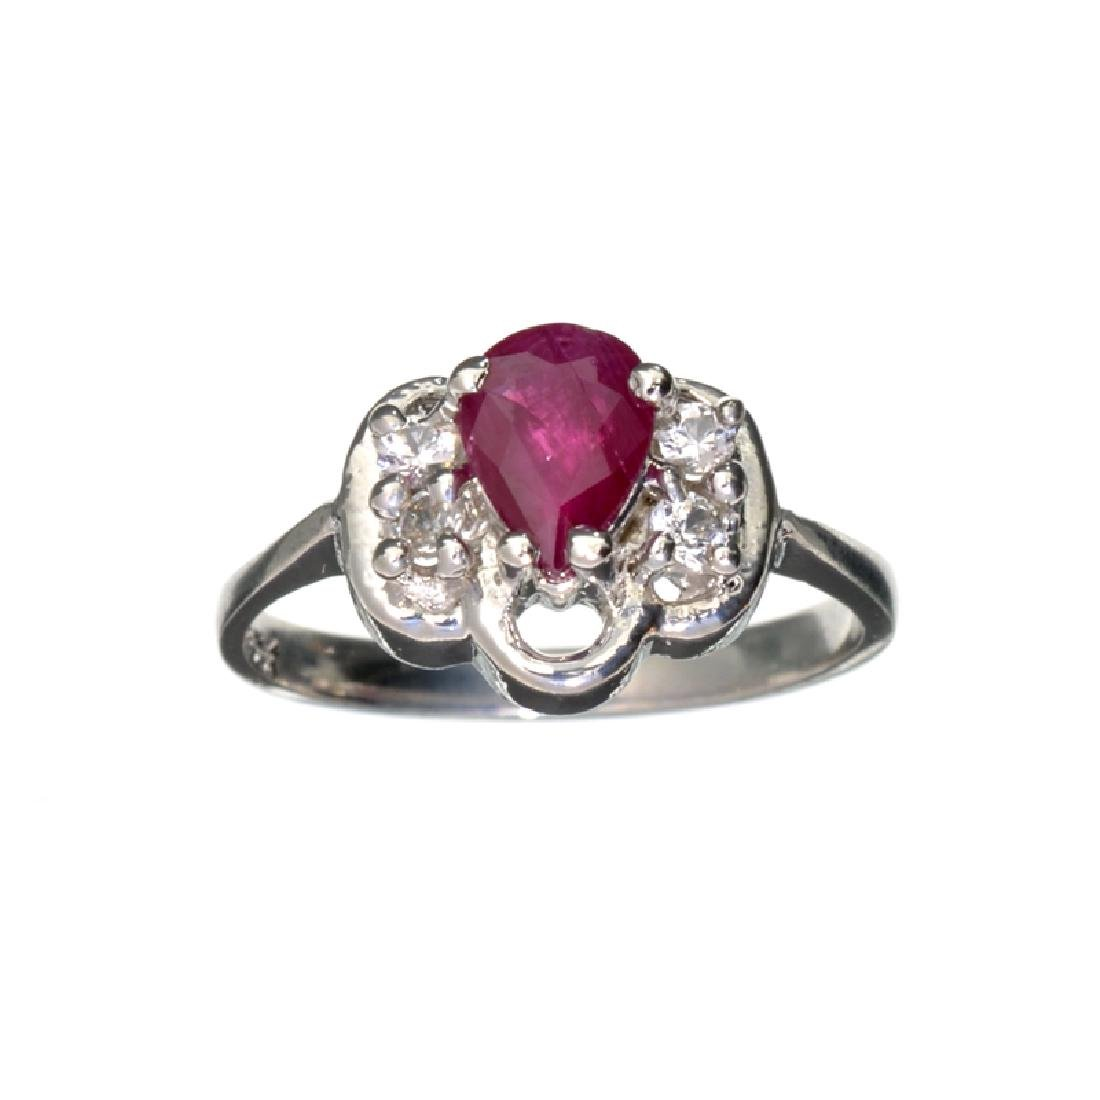 APP: 0.8k 0.55CT Ruby And Topaz Platinum Over Sterling